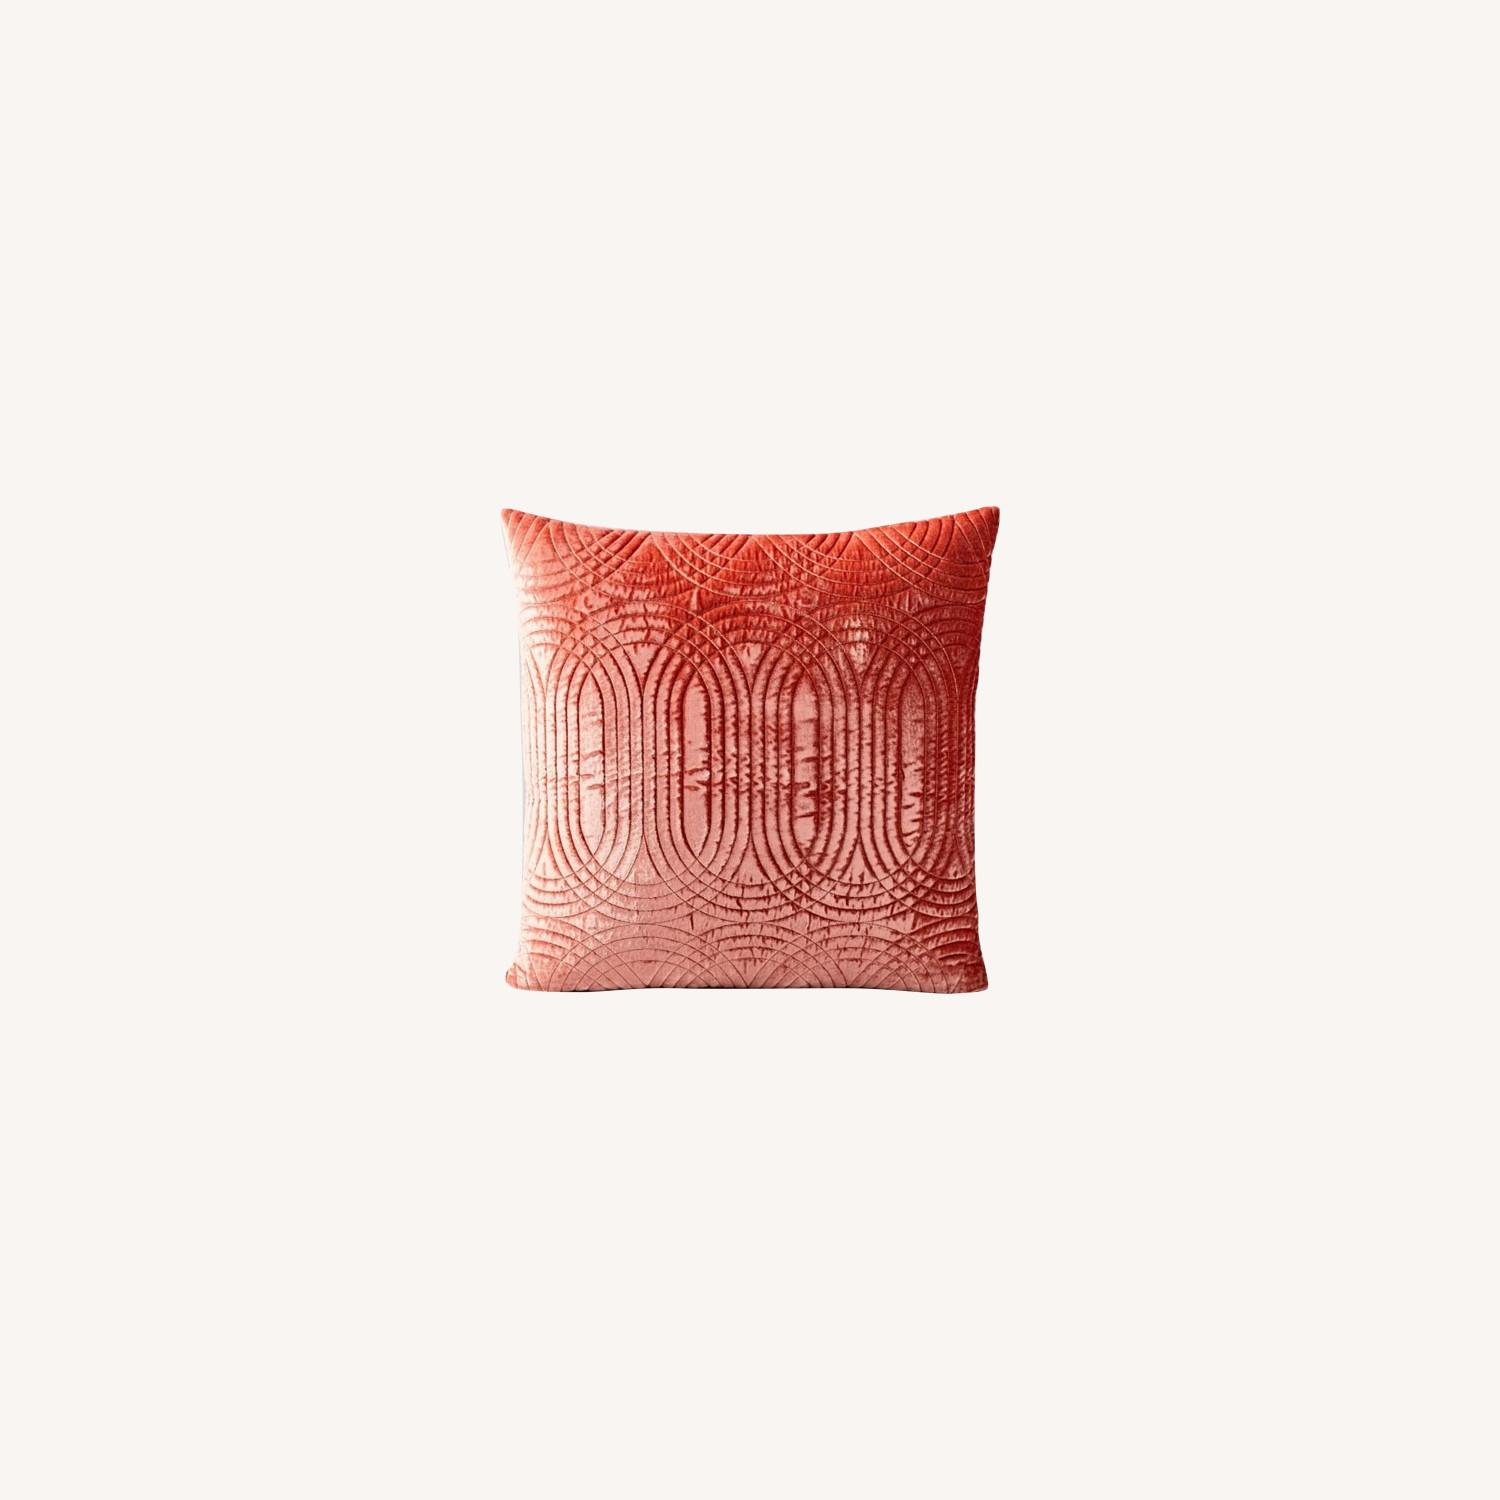 West Elm Lush Velvet Infinity Quilted Pillow Cover - image-0